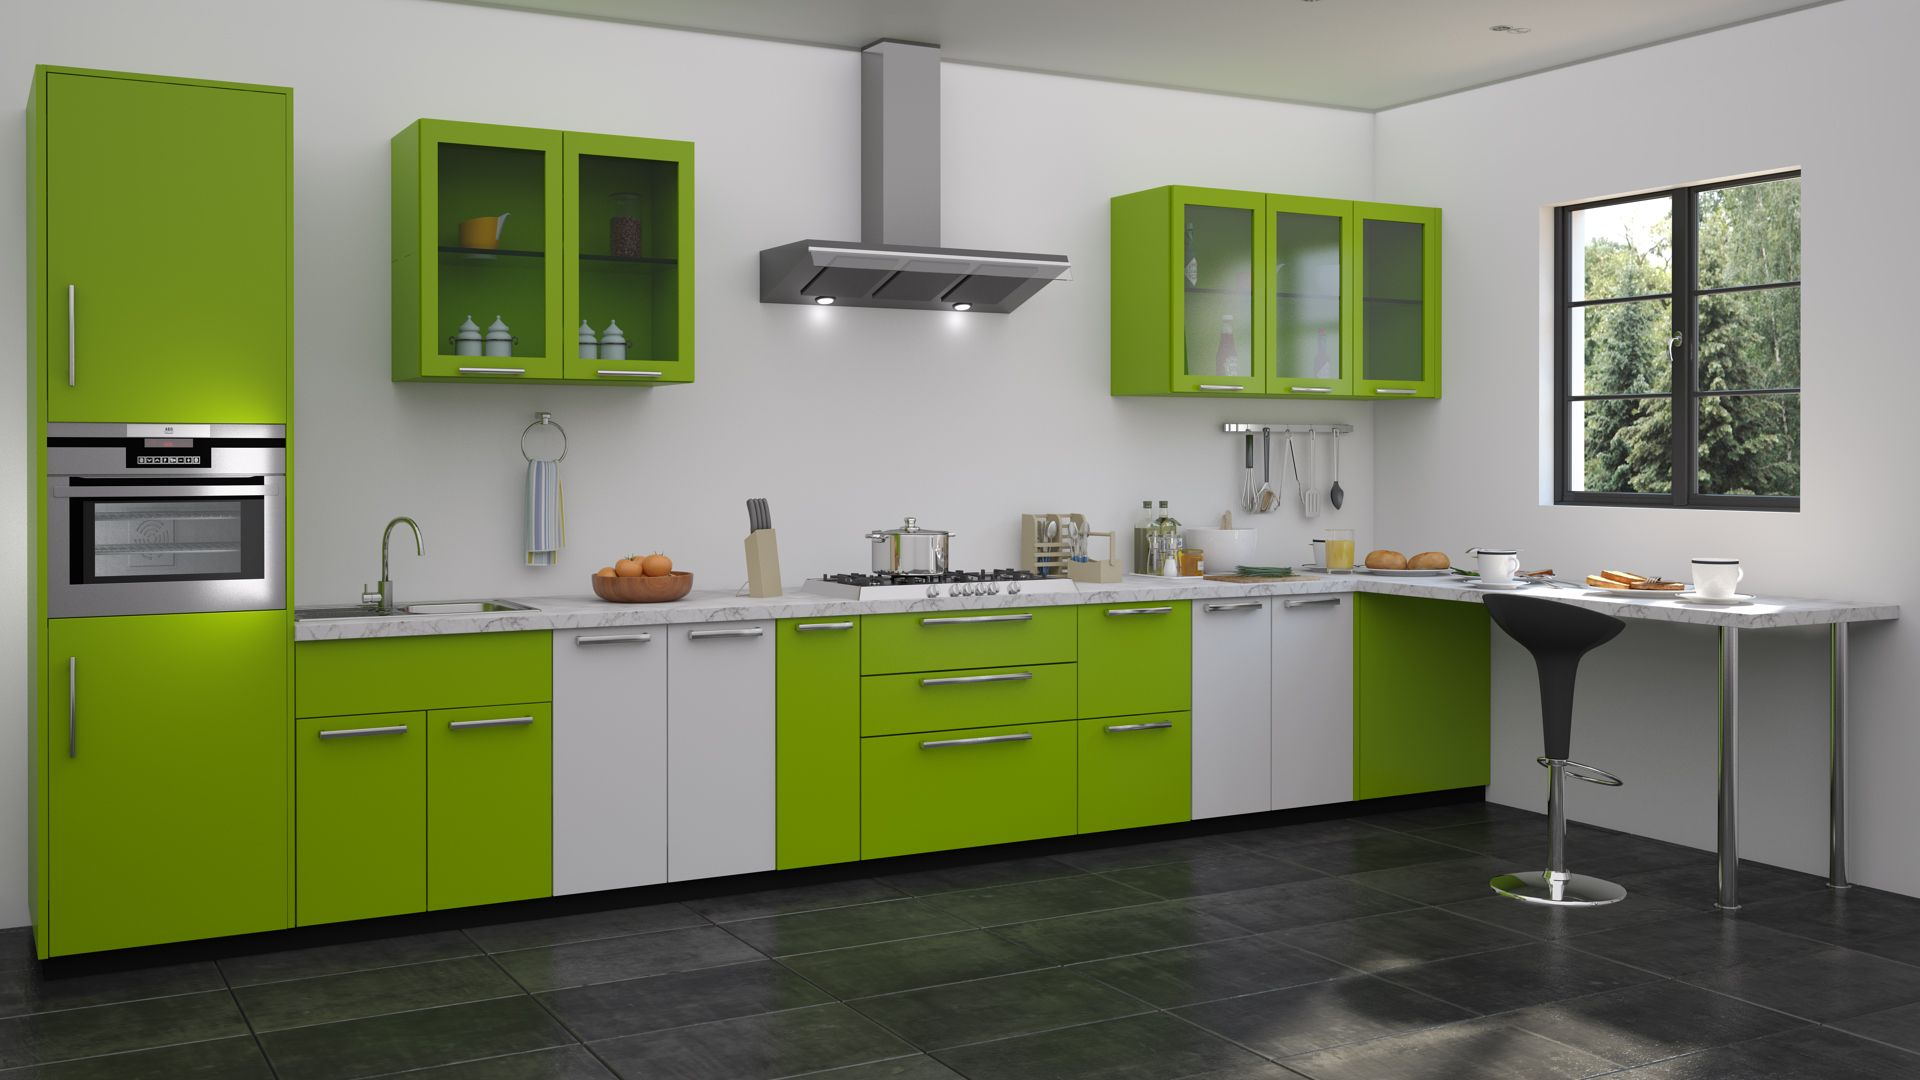 Kitchen Designing Online Green Modular Kitchen Designs  Straight Kitchen Designs